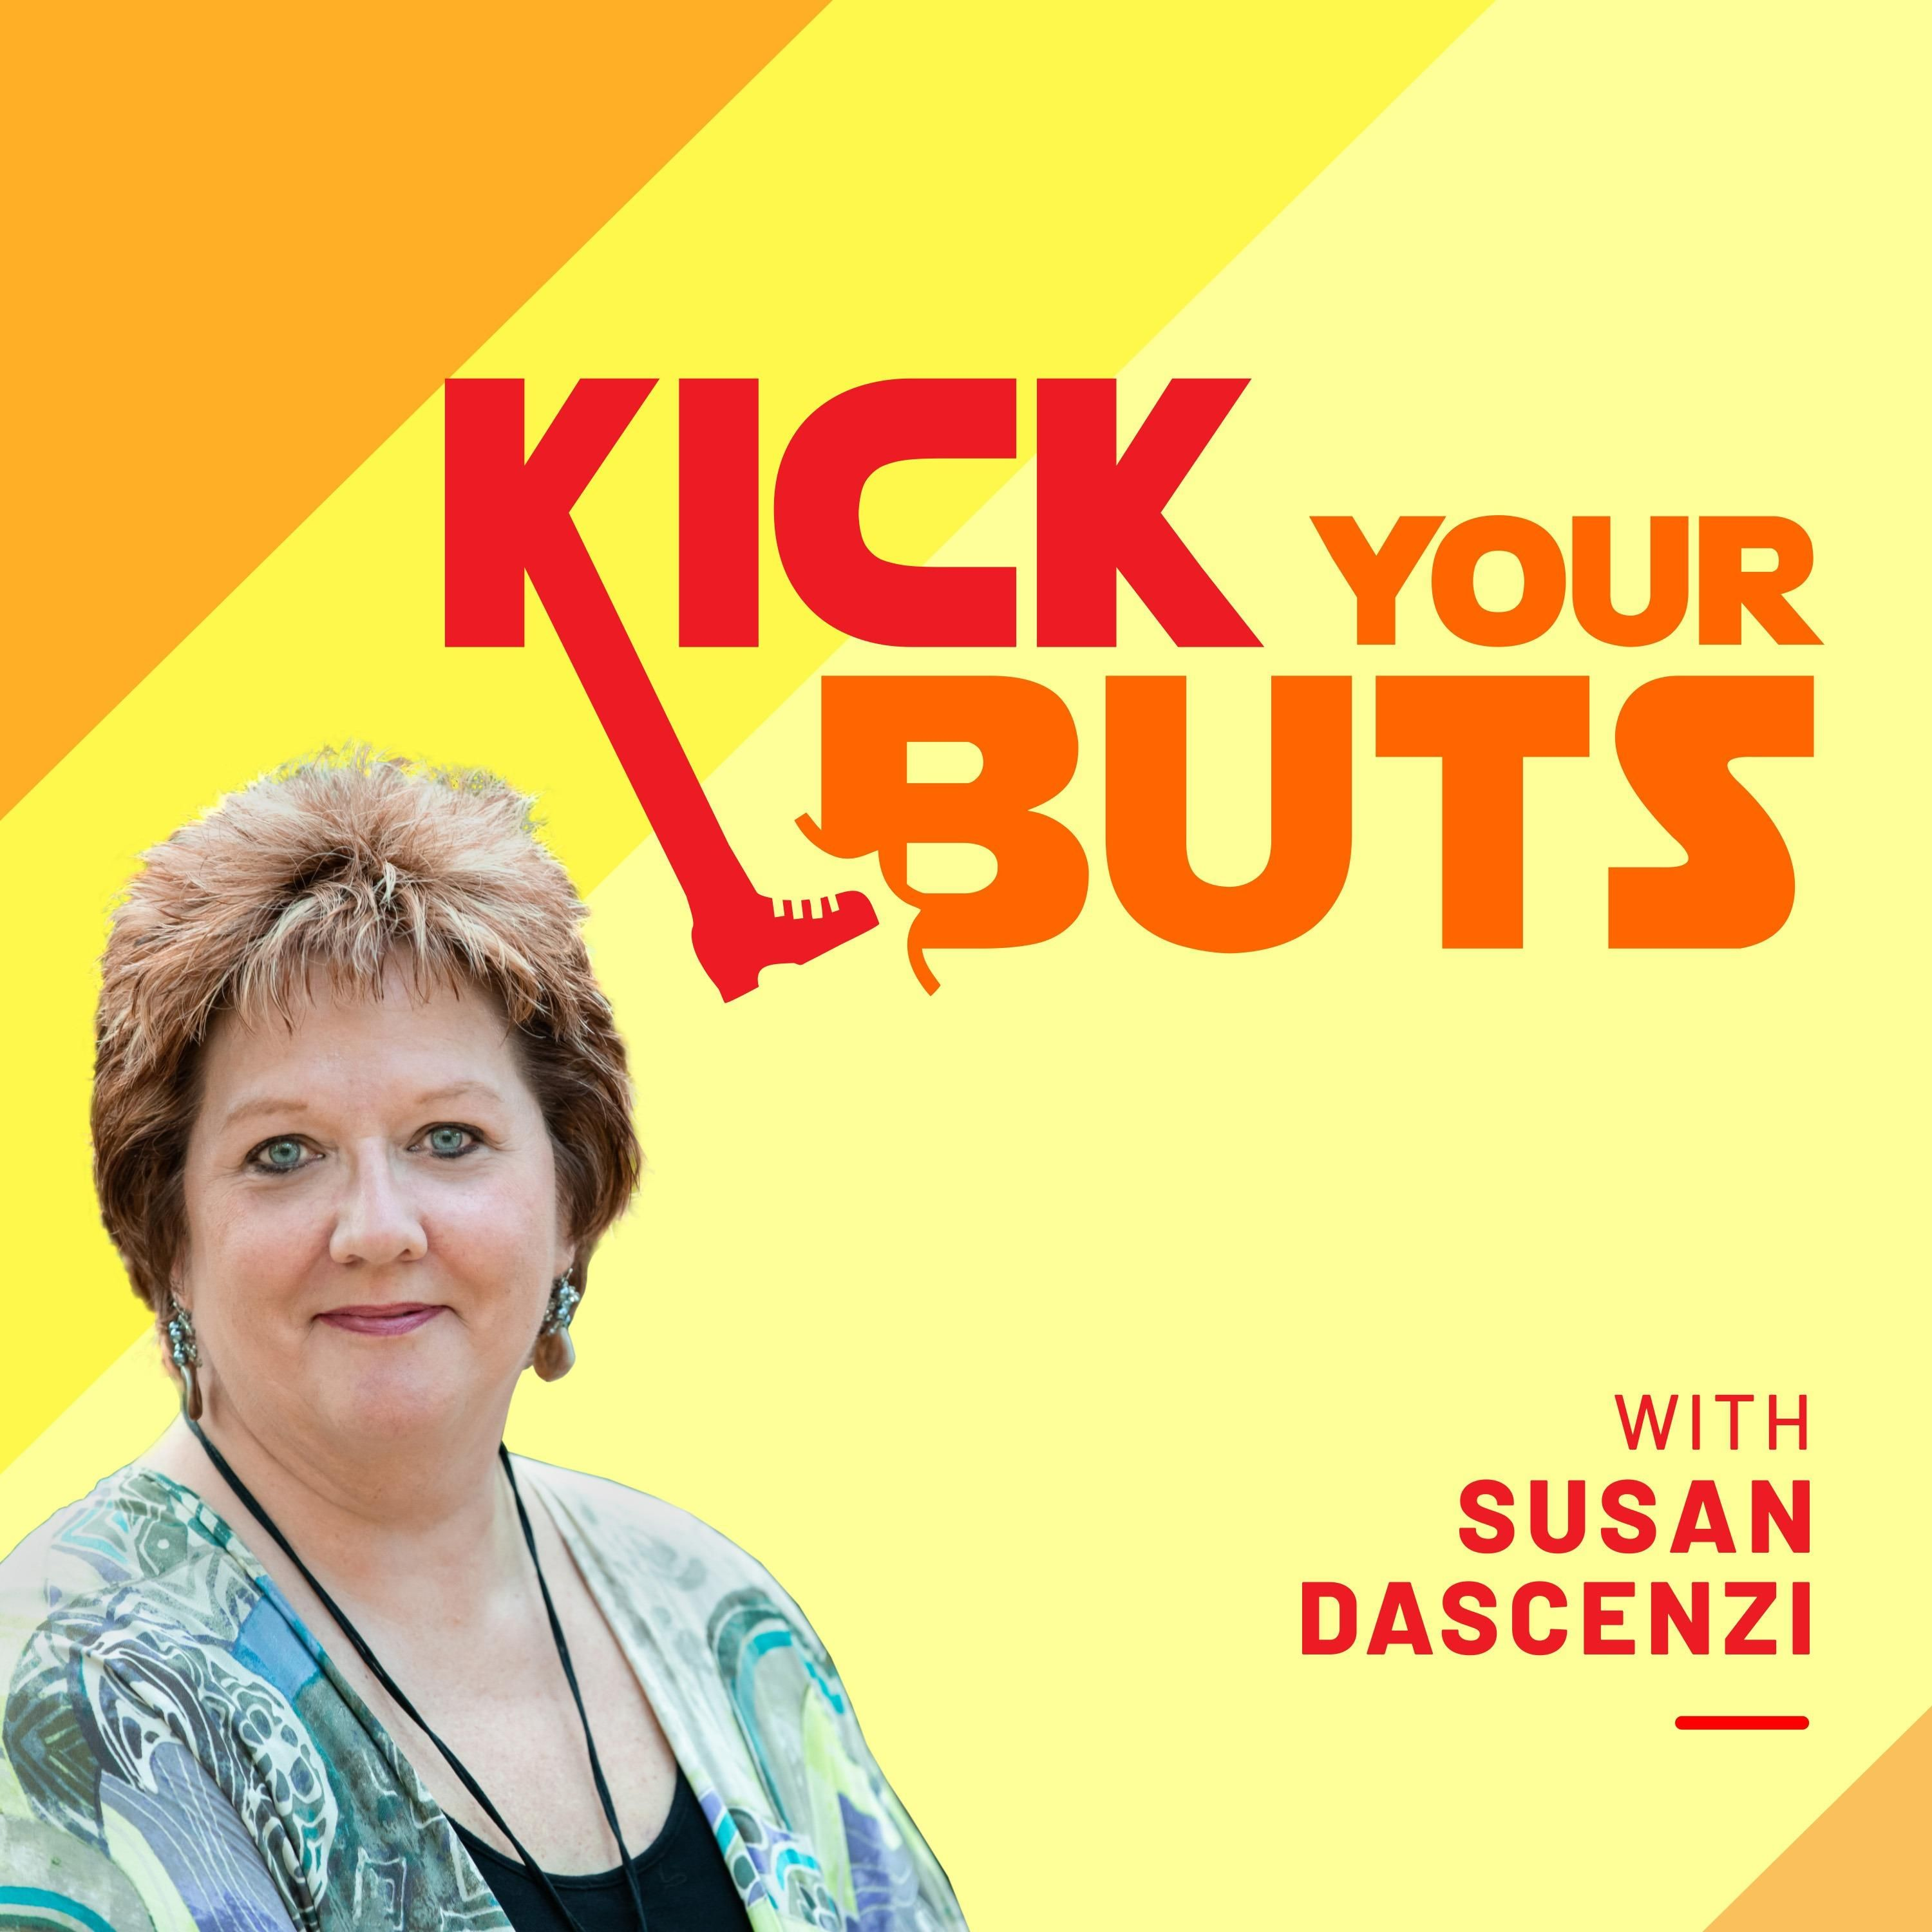 Kick Your Buts